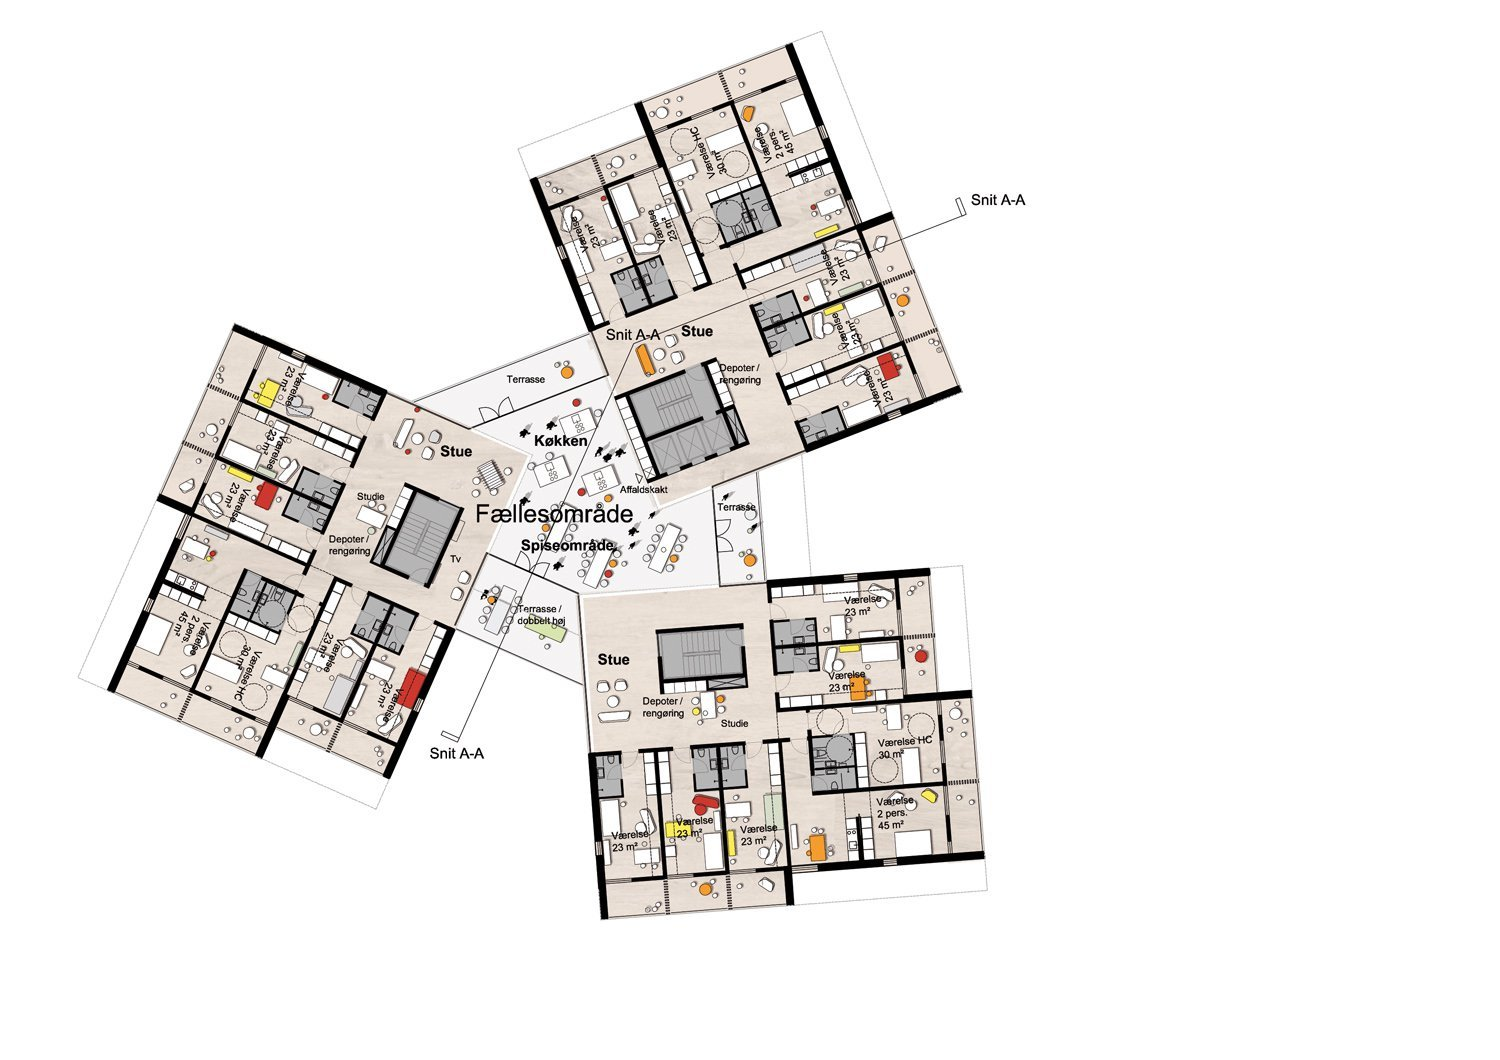 Apartment Building Floor Plans Gallery Of University Of Southern Denmark Student Housing